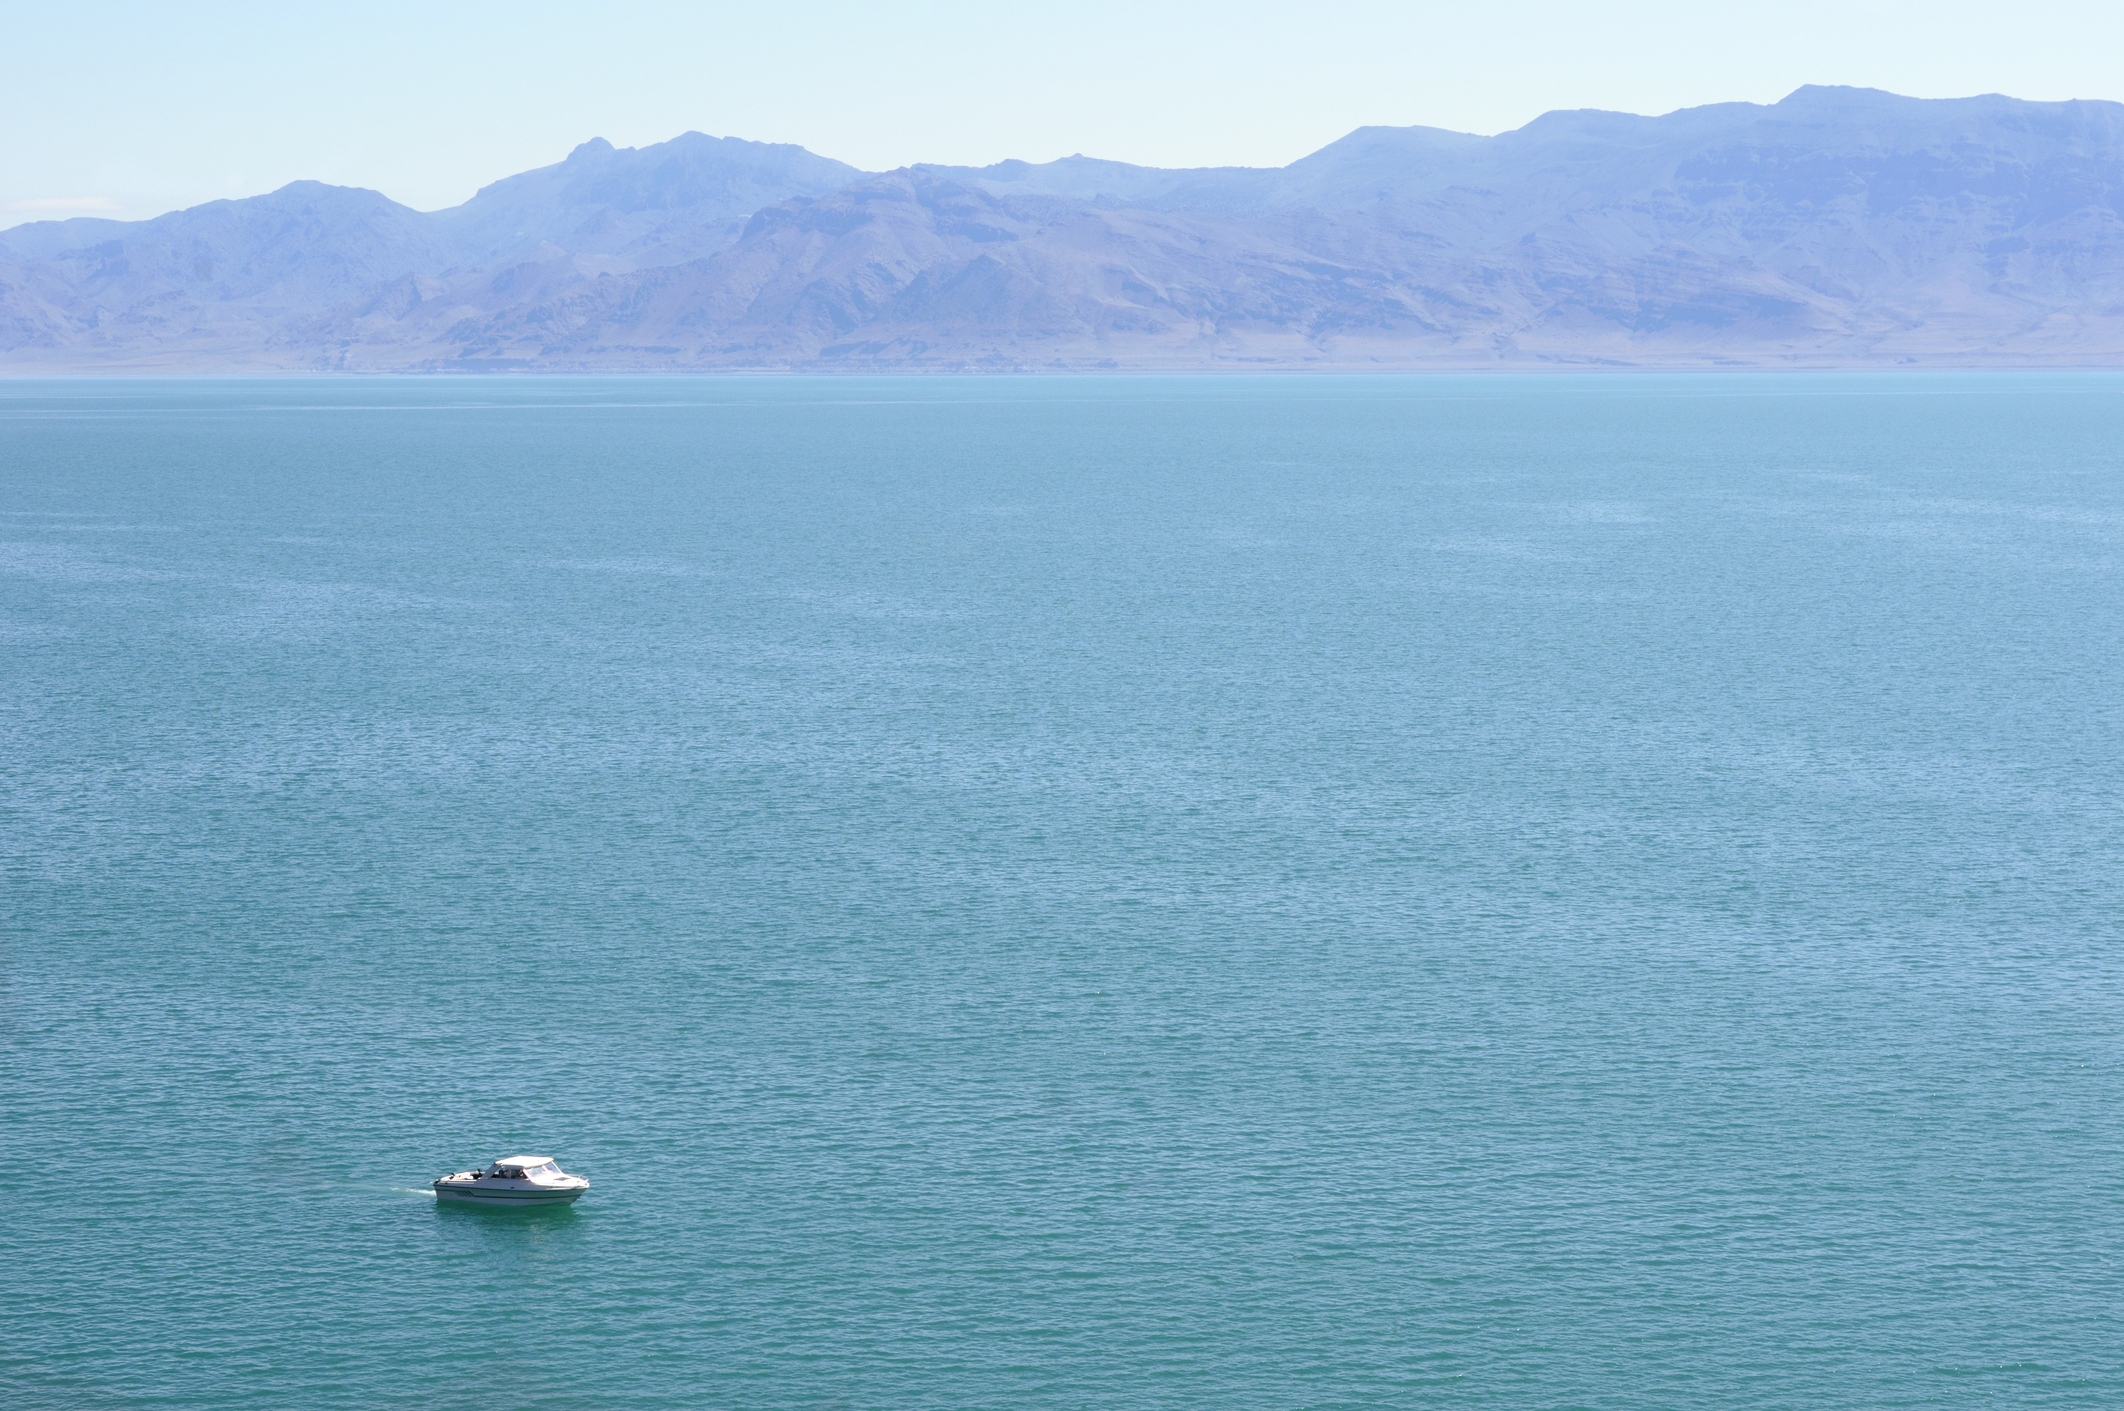 A lone fishing boat on a vast turquoise lak.e